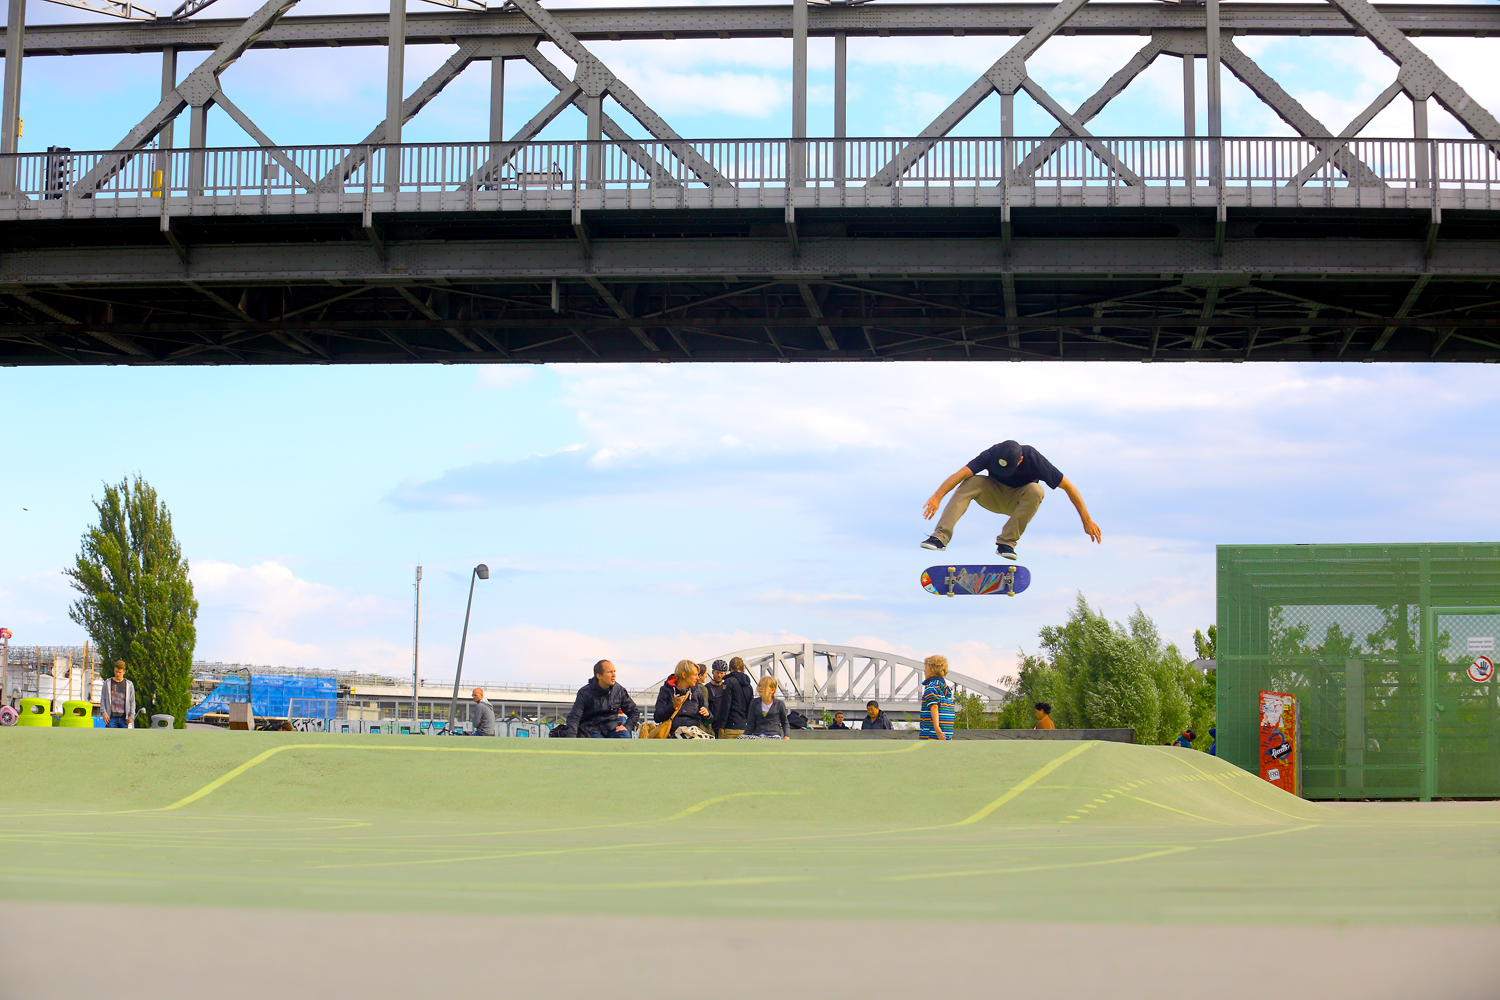 Mike Carroll – Heelflip